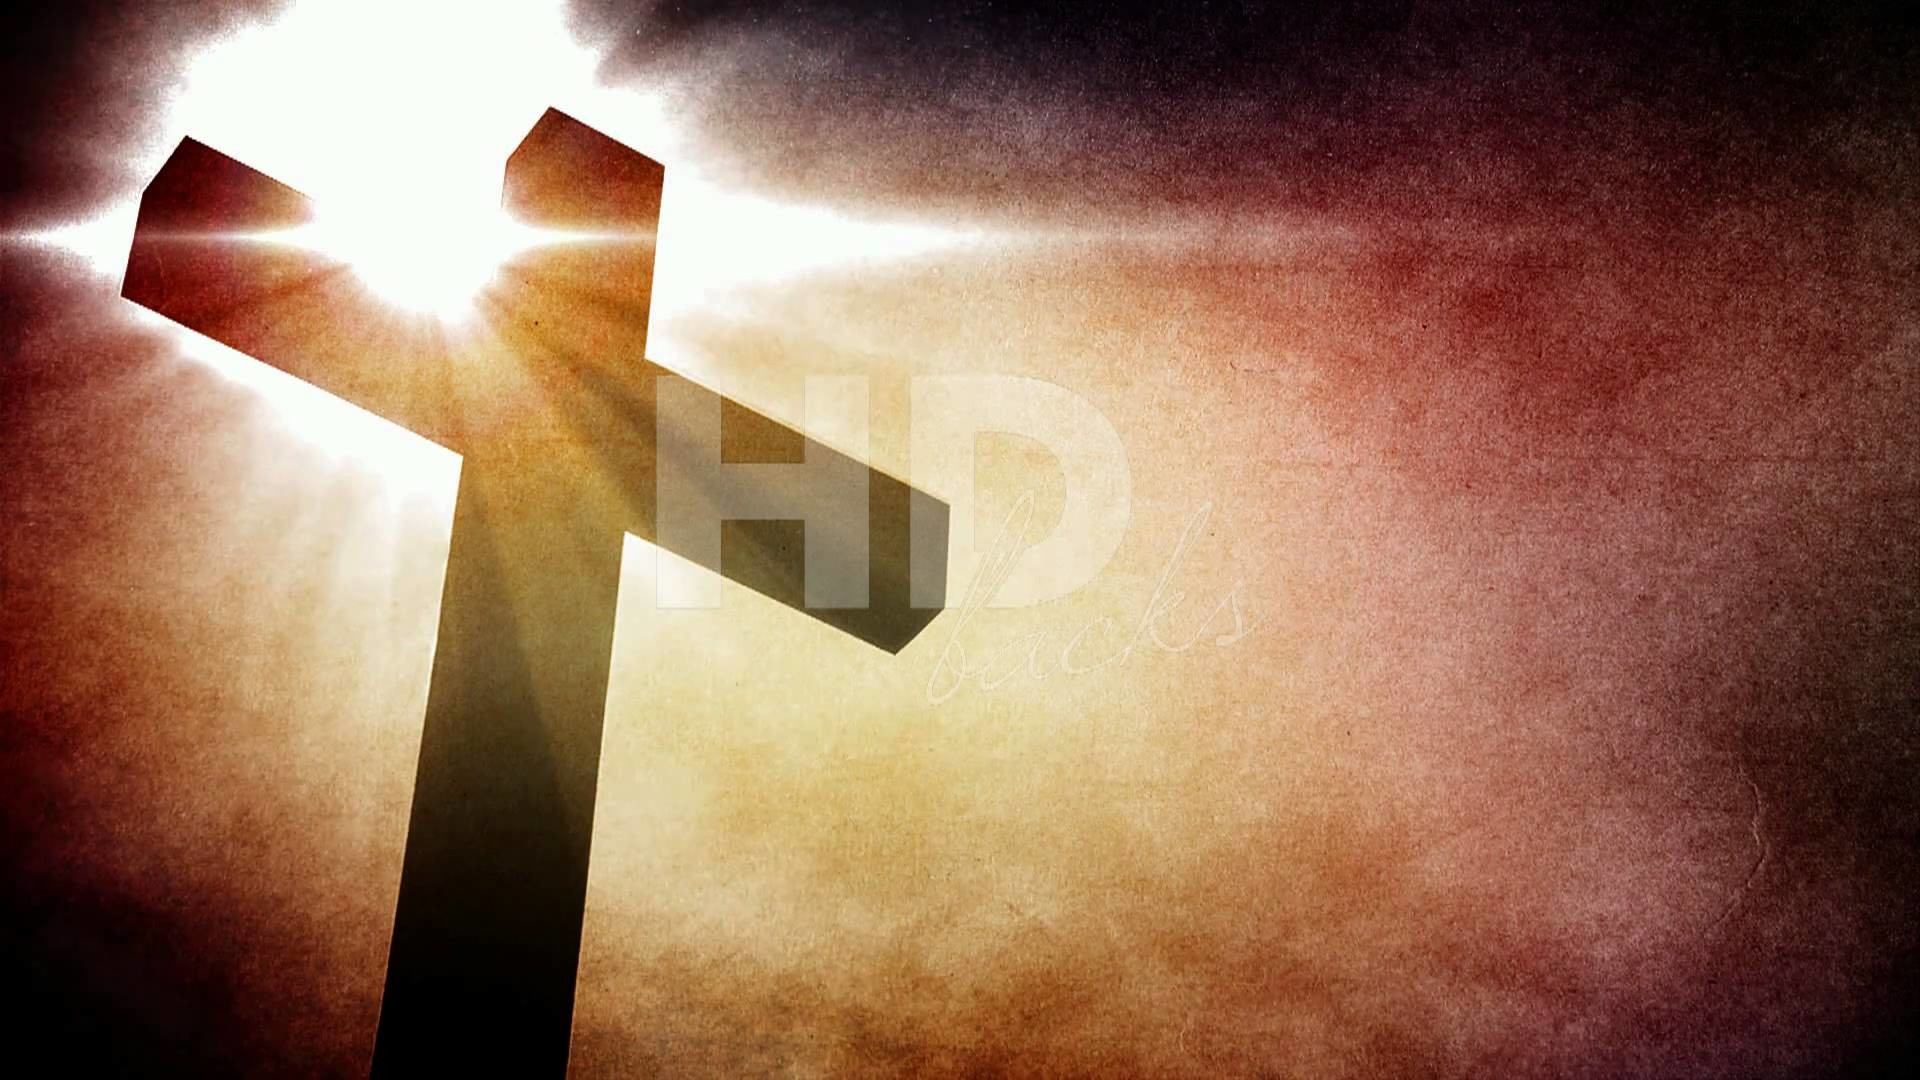 1920x1080 Christian Cross Wallpapers Wallpaper Download Christianity